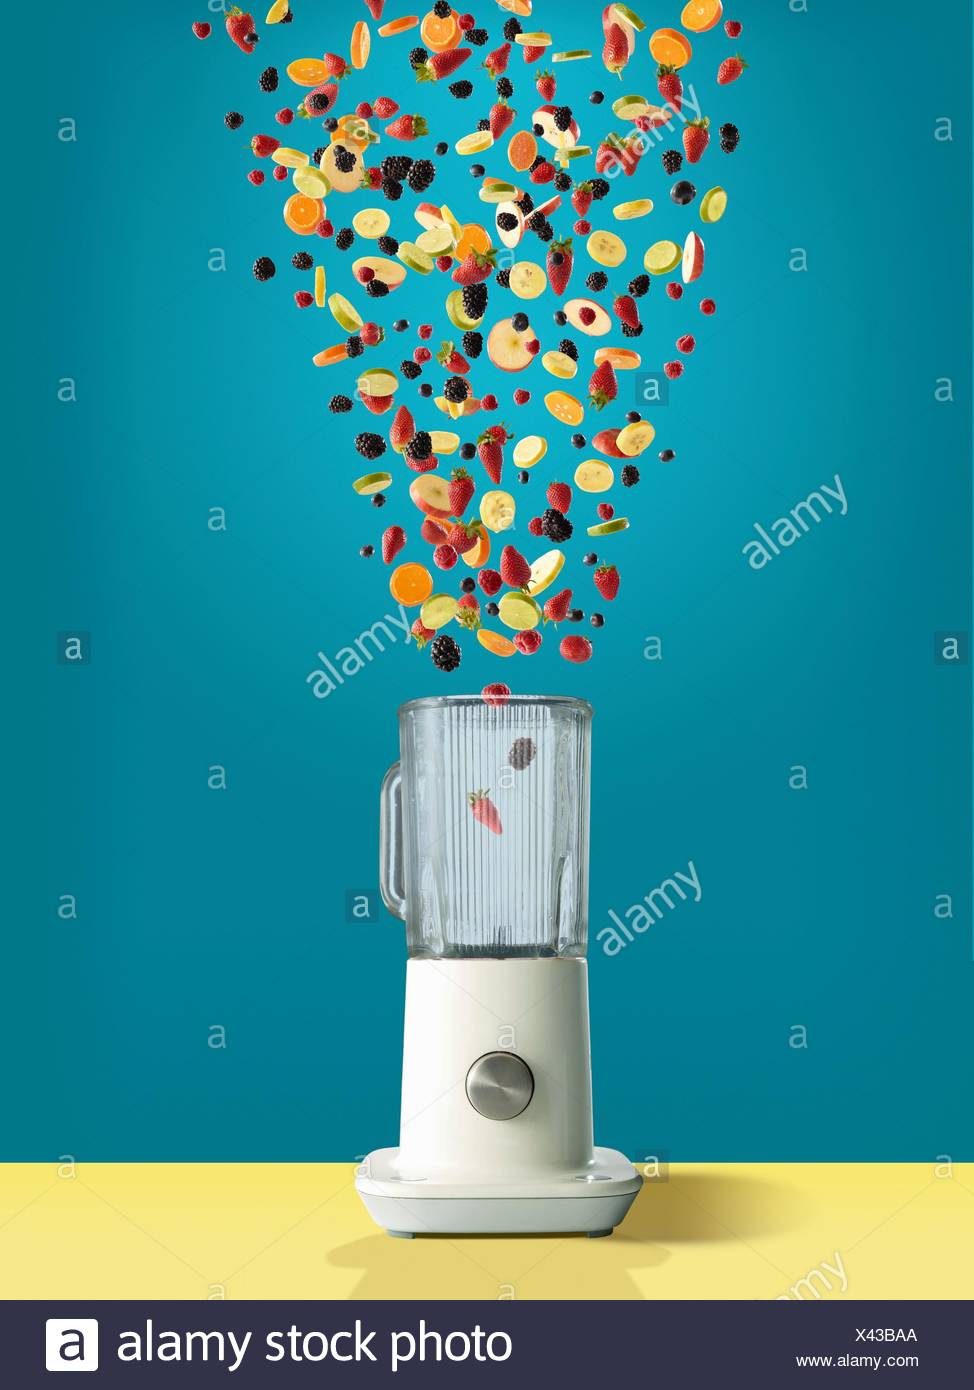 Variety of fresh sliced fruit and berries dropping into juicer - Stock Image